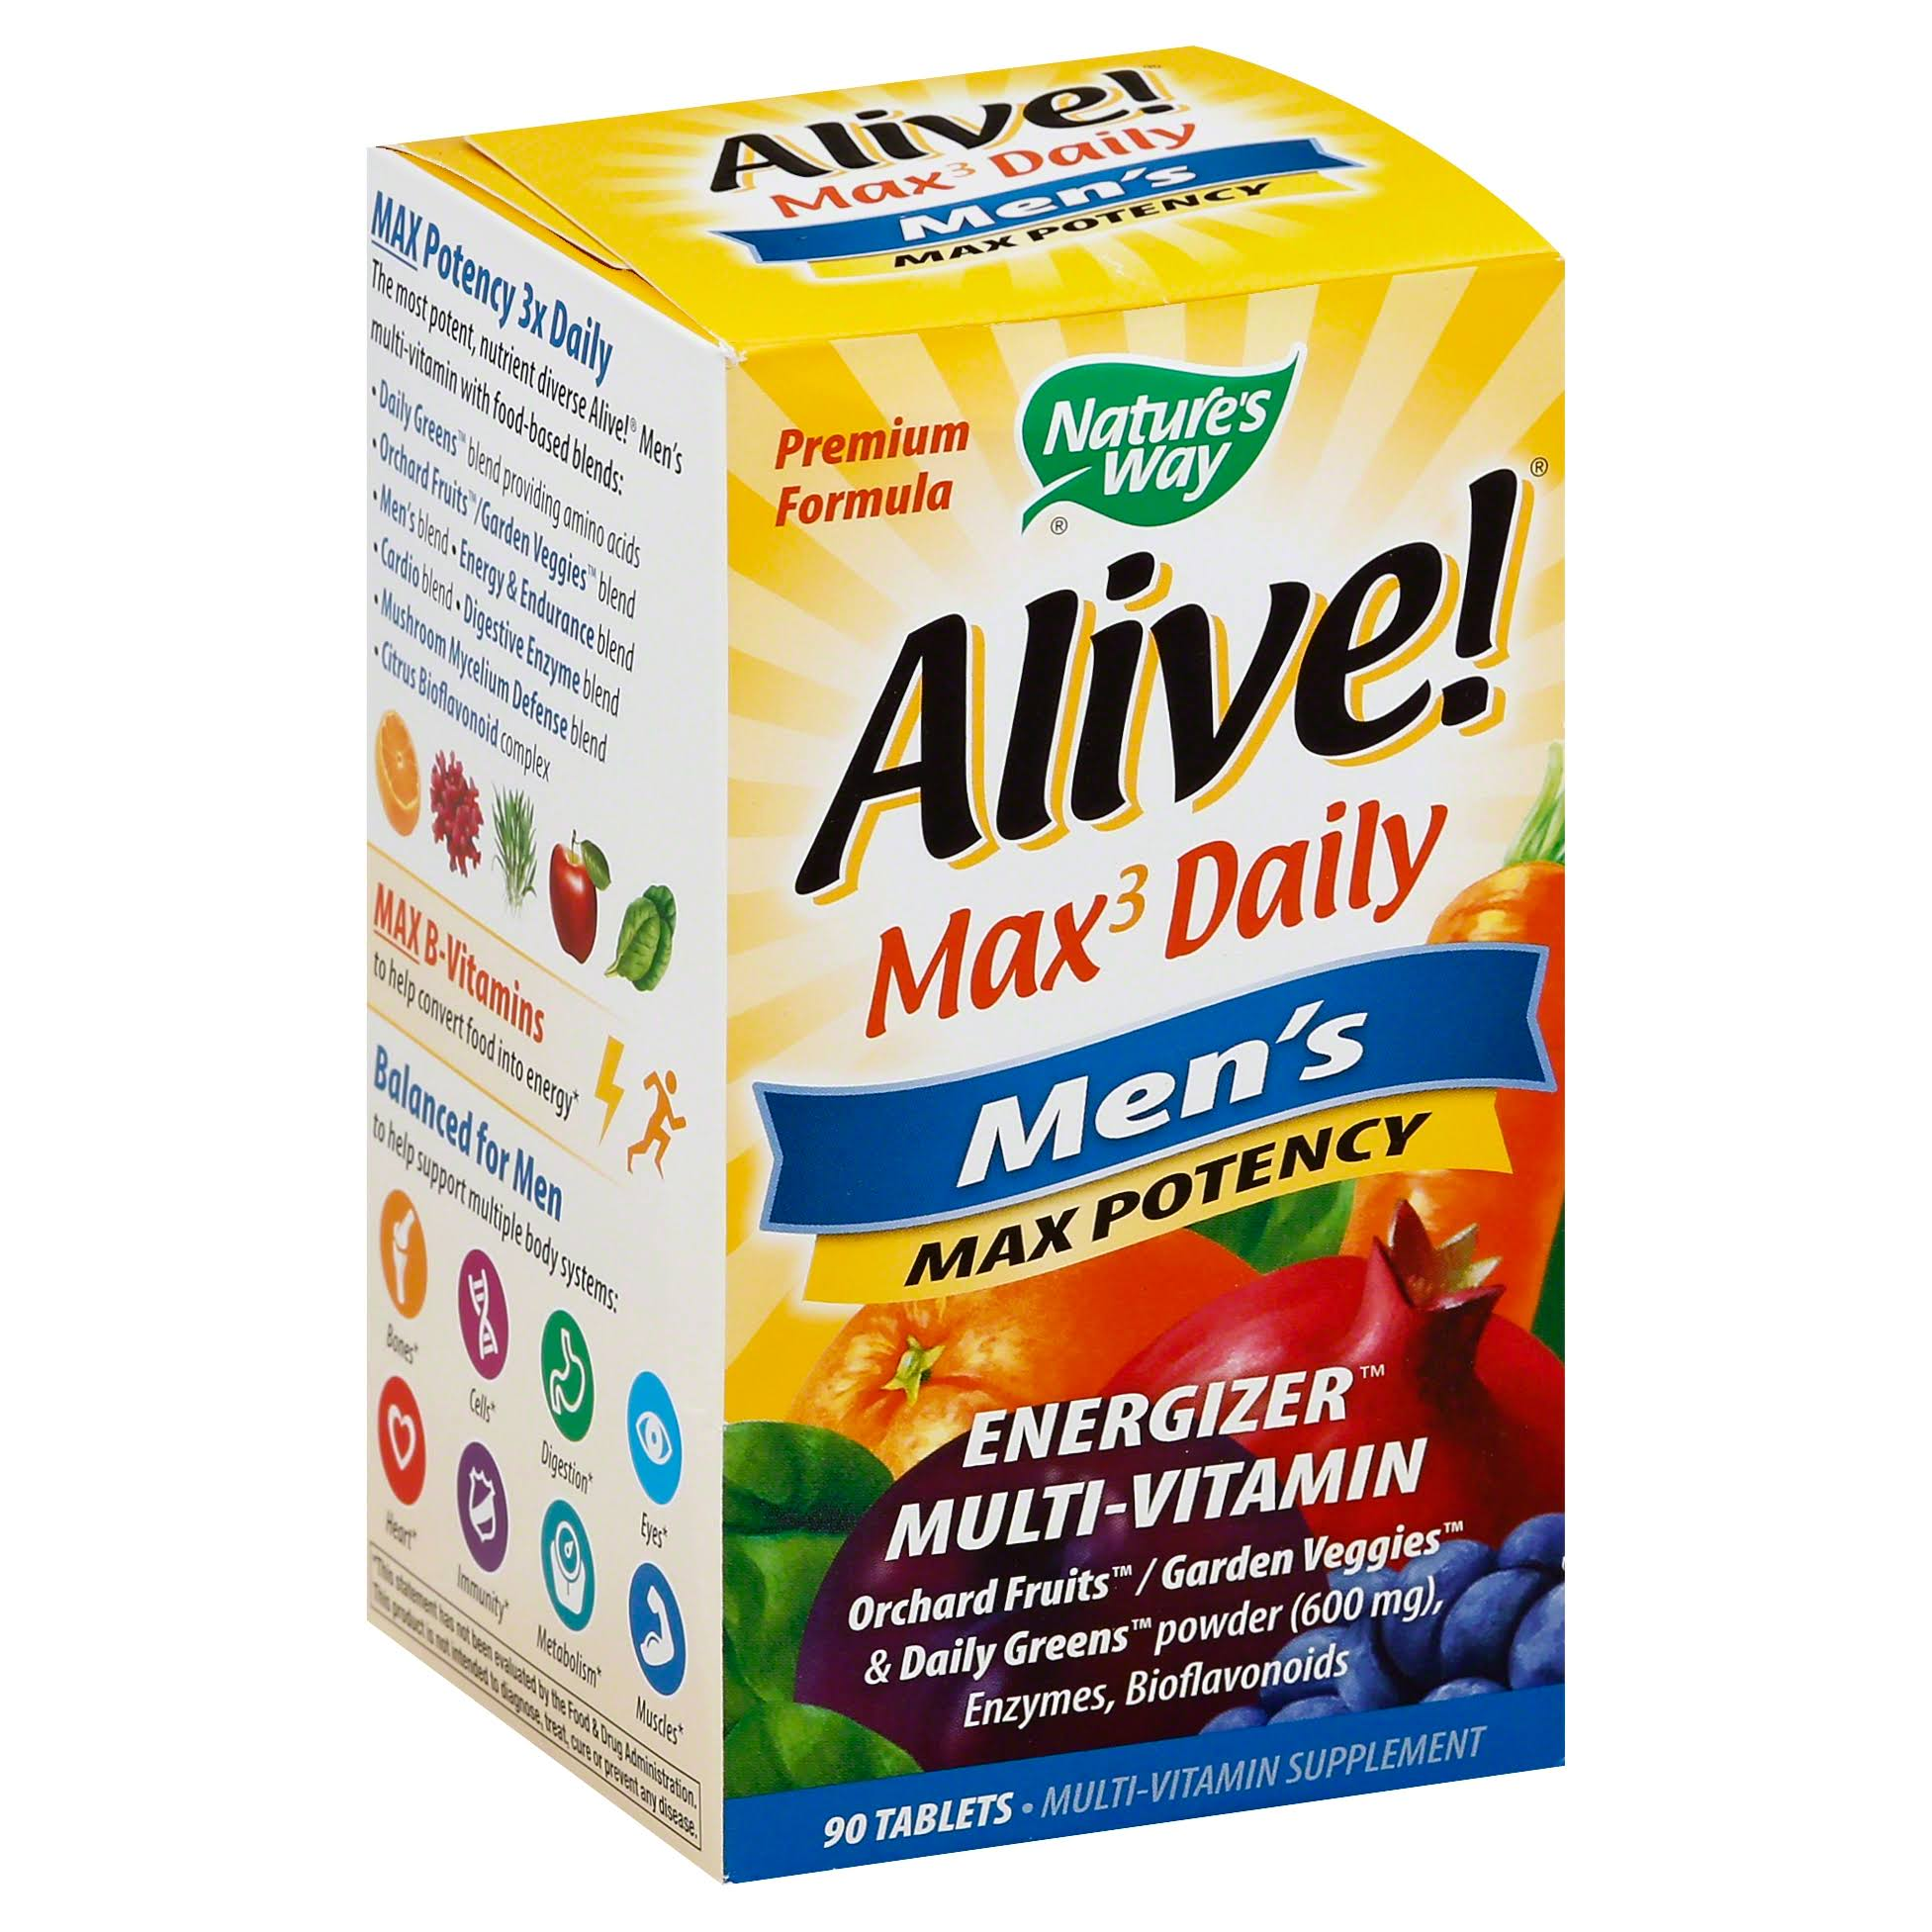 Nature's Way Alive Max3 Daily Men's Max Potency Supplement - 90ct